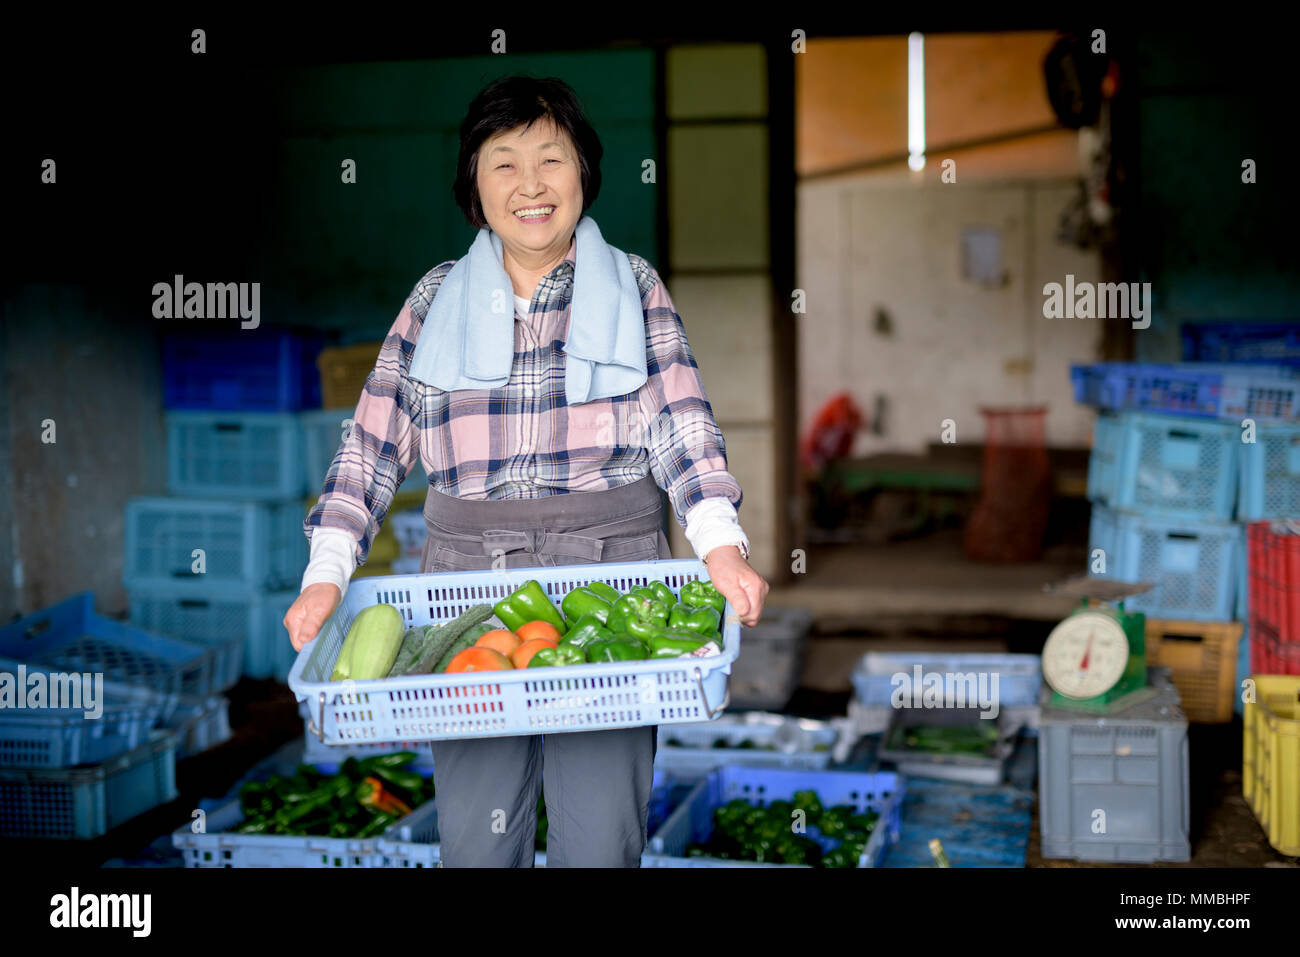 Woman with black hair wearing checkered shirt standing in front of barn, holding blue plastic crate with fresh vegetables, smiling at camera. - Stock Image